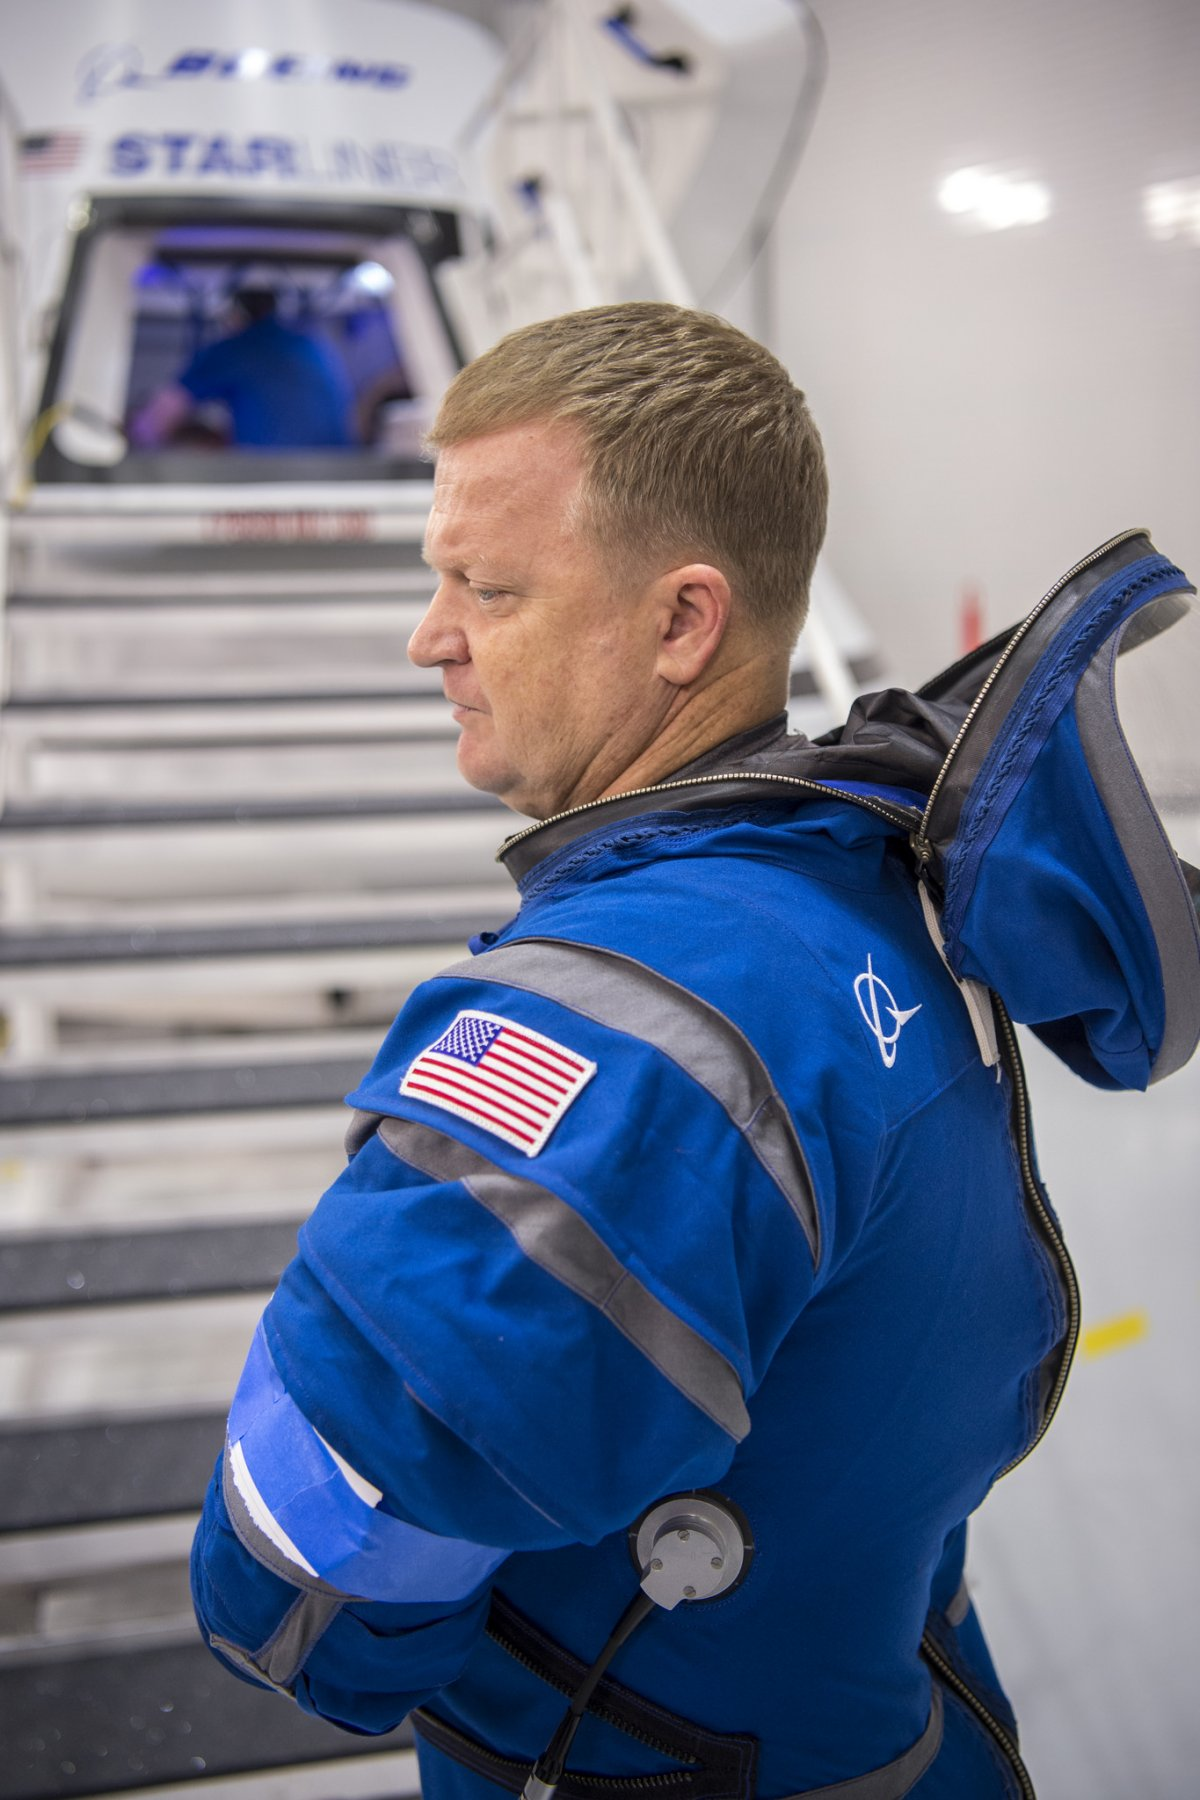 the-helmet-is-attached-with-a-thick-air-tight-zipper--no-heavy-or-bulky-neck-ring-required-nasa-astronaut-eric-boe-is-the-guy-in-the-suit